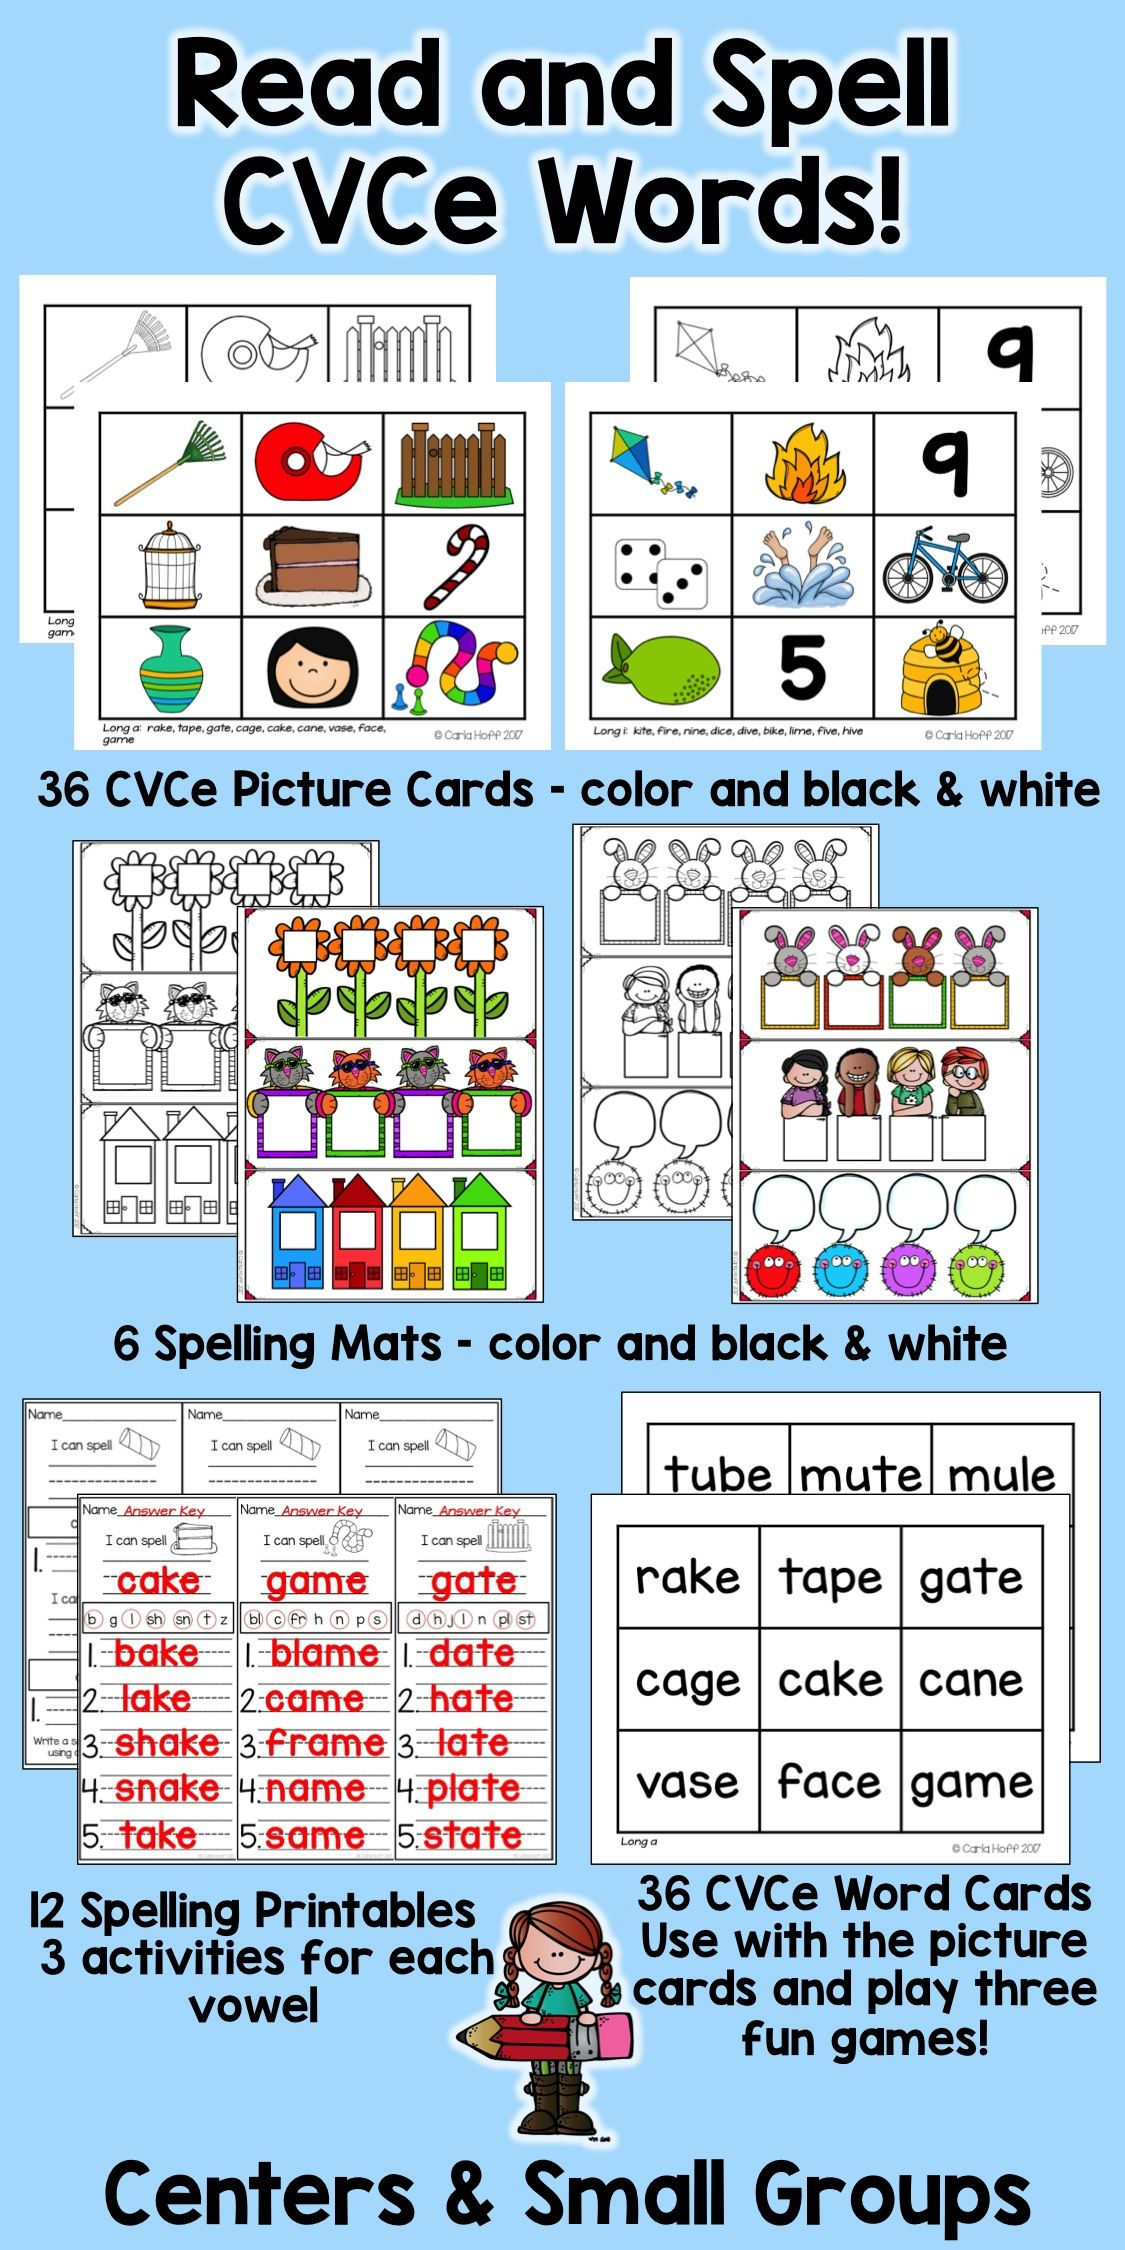 Practice Reading And Spelling Long Vowel Cvce Words With